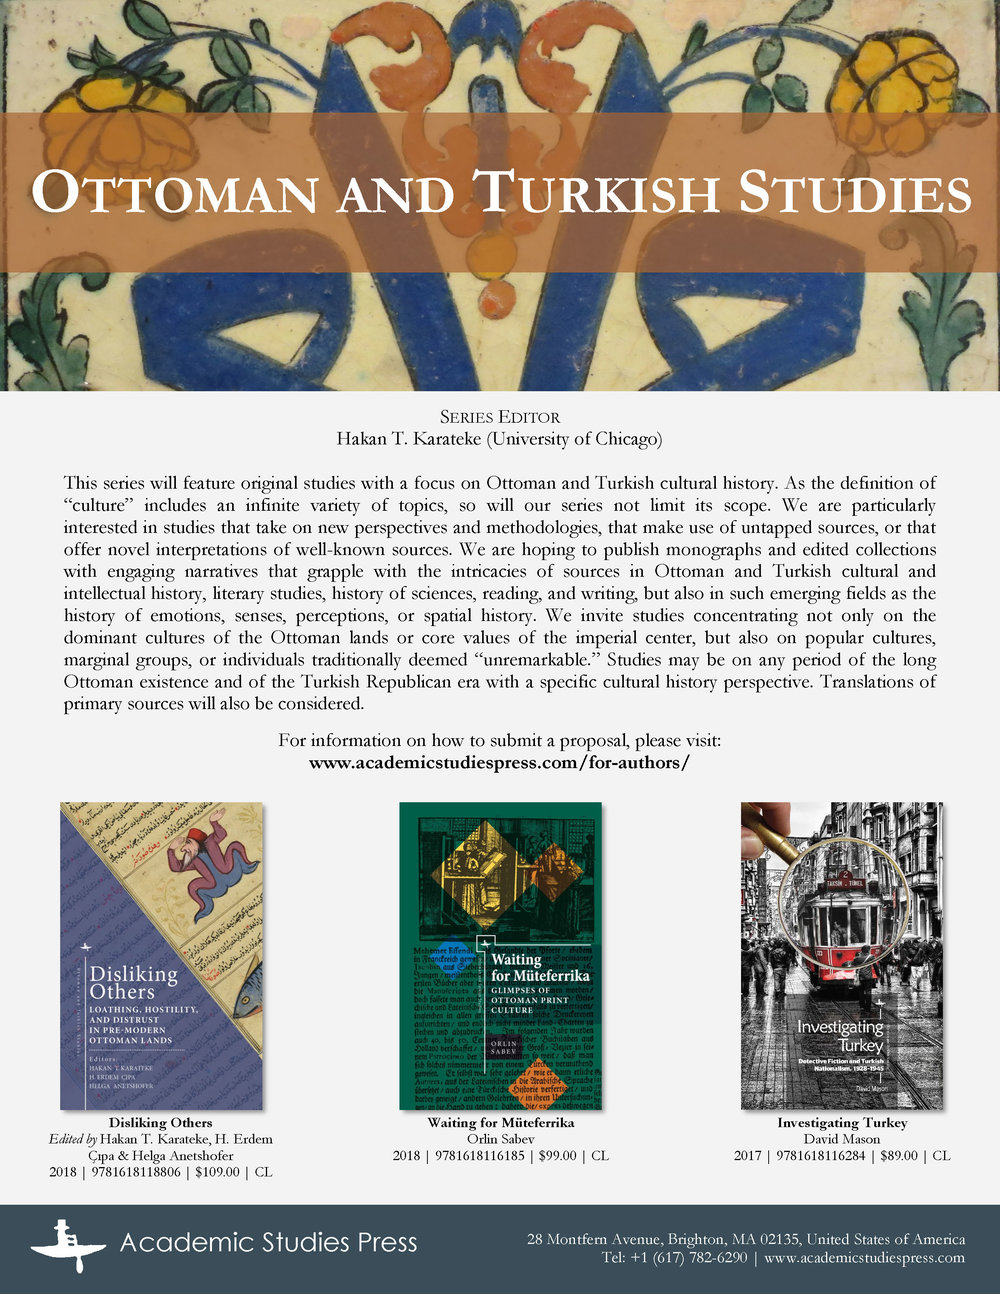 Ottoman and Turkish Studies Flyer.jpg